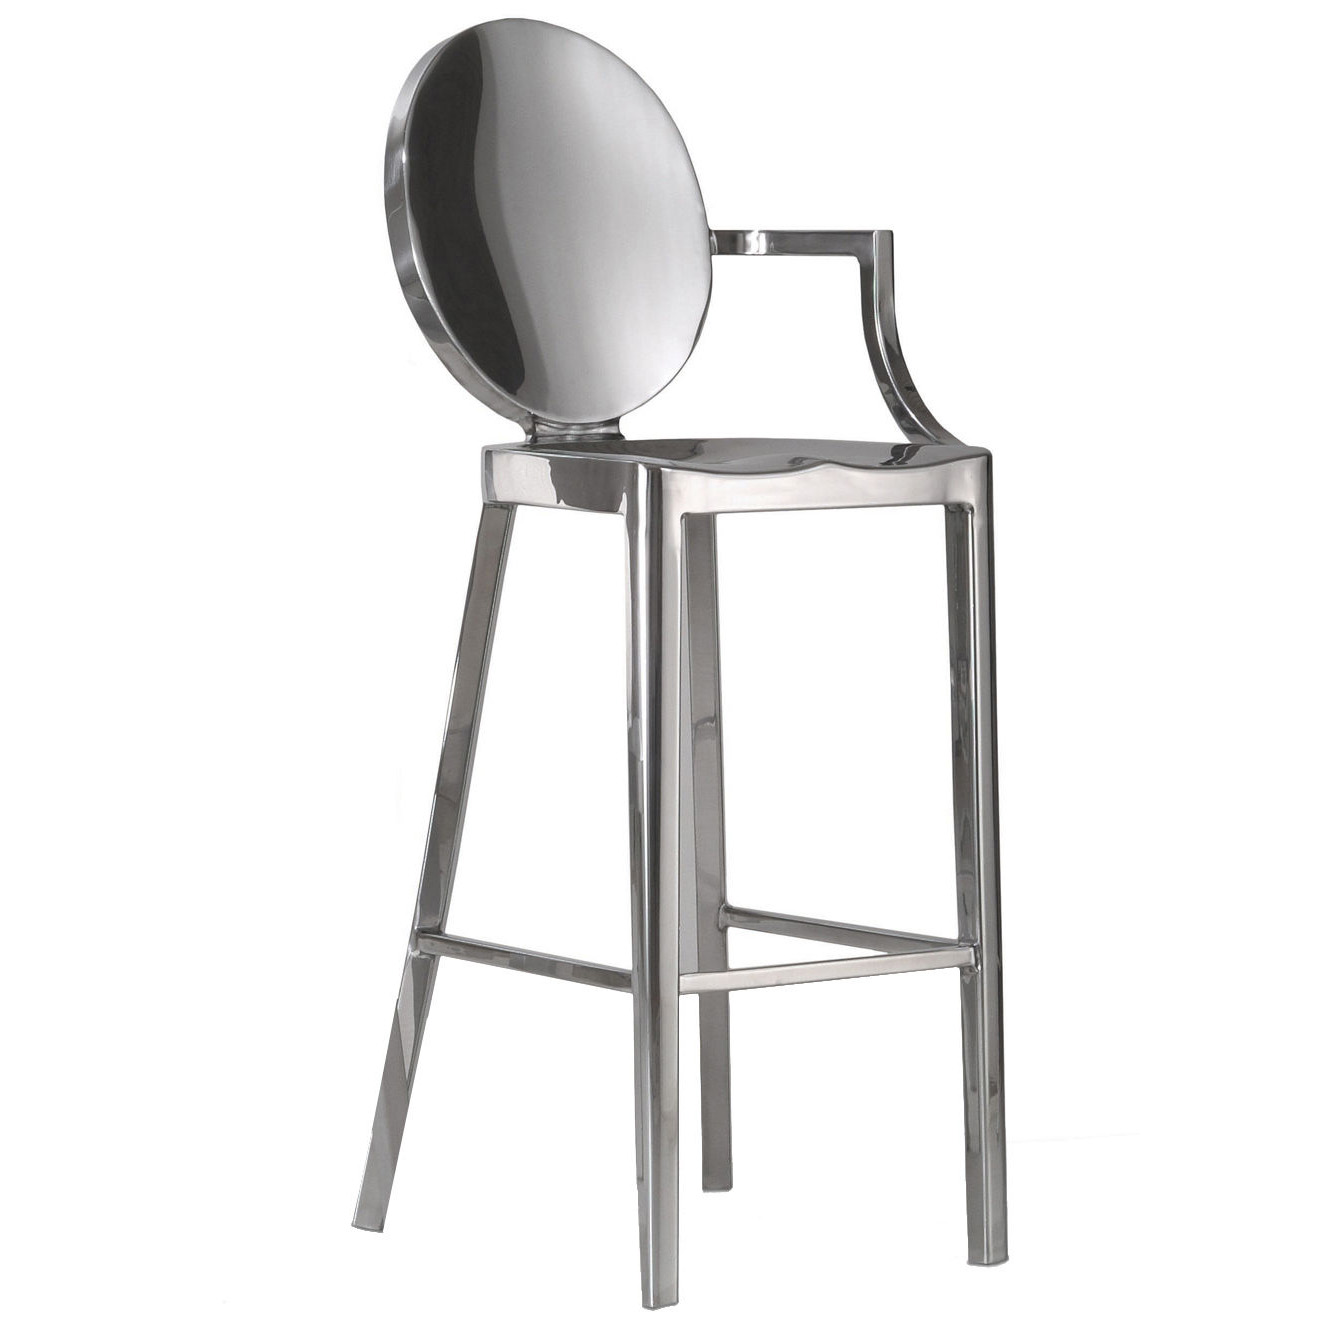 Kong barstool with arms emeco philippe starck owo online design store - Tabouret philippe starck ...